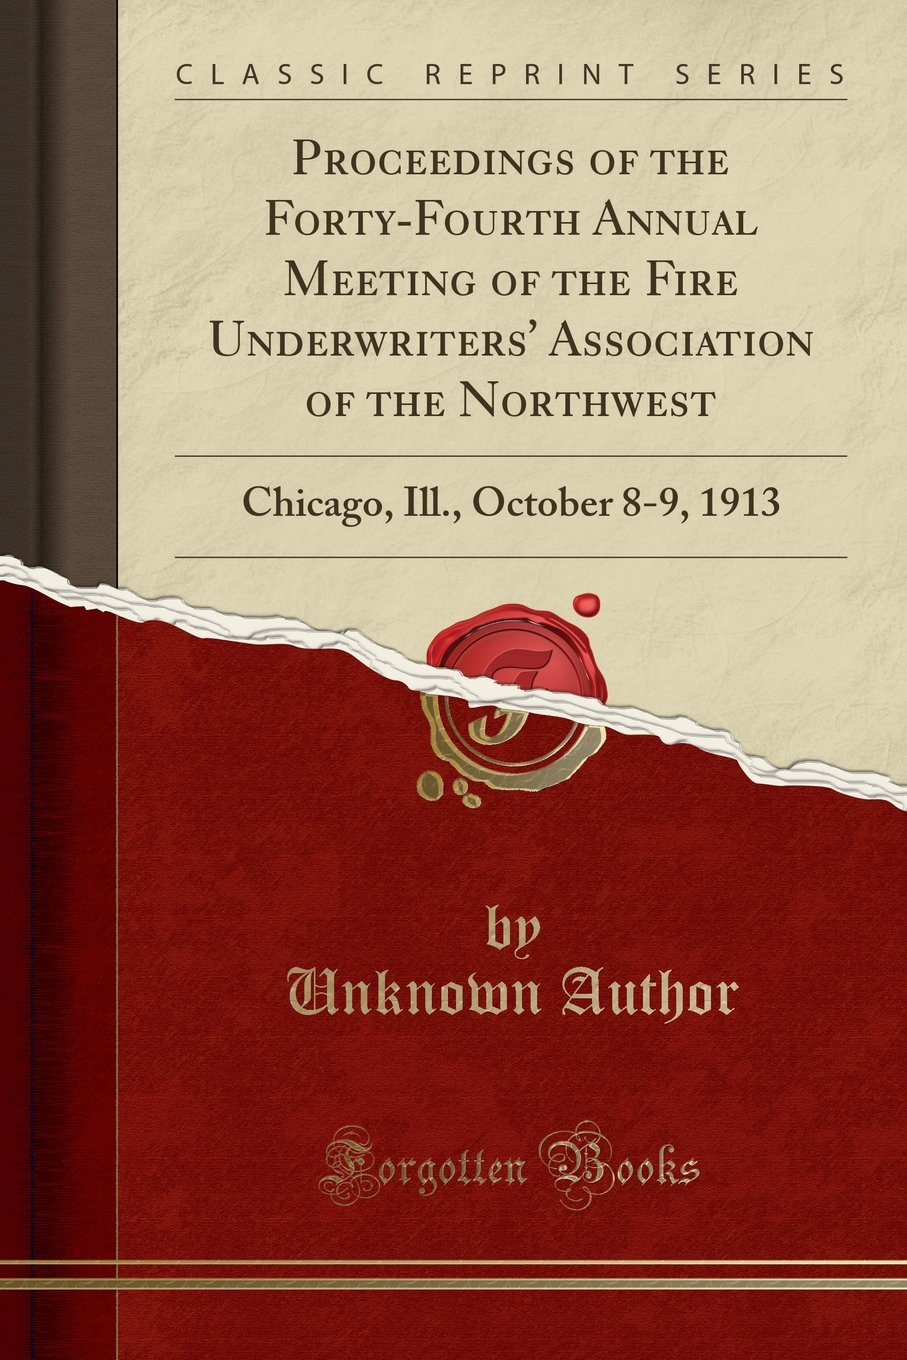 Download Proceedings of the Forty-Fourth Annual Meeting of the Fire Underwriters' Association of the Northwest: Chicago, Ill., October 8-9, 1913 (Classic Reprint) PDF